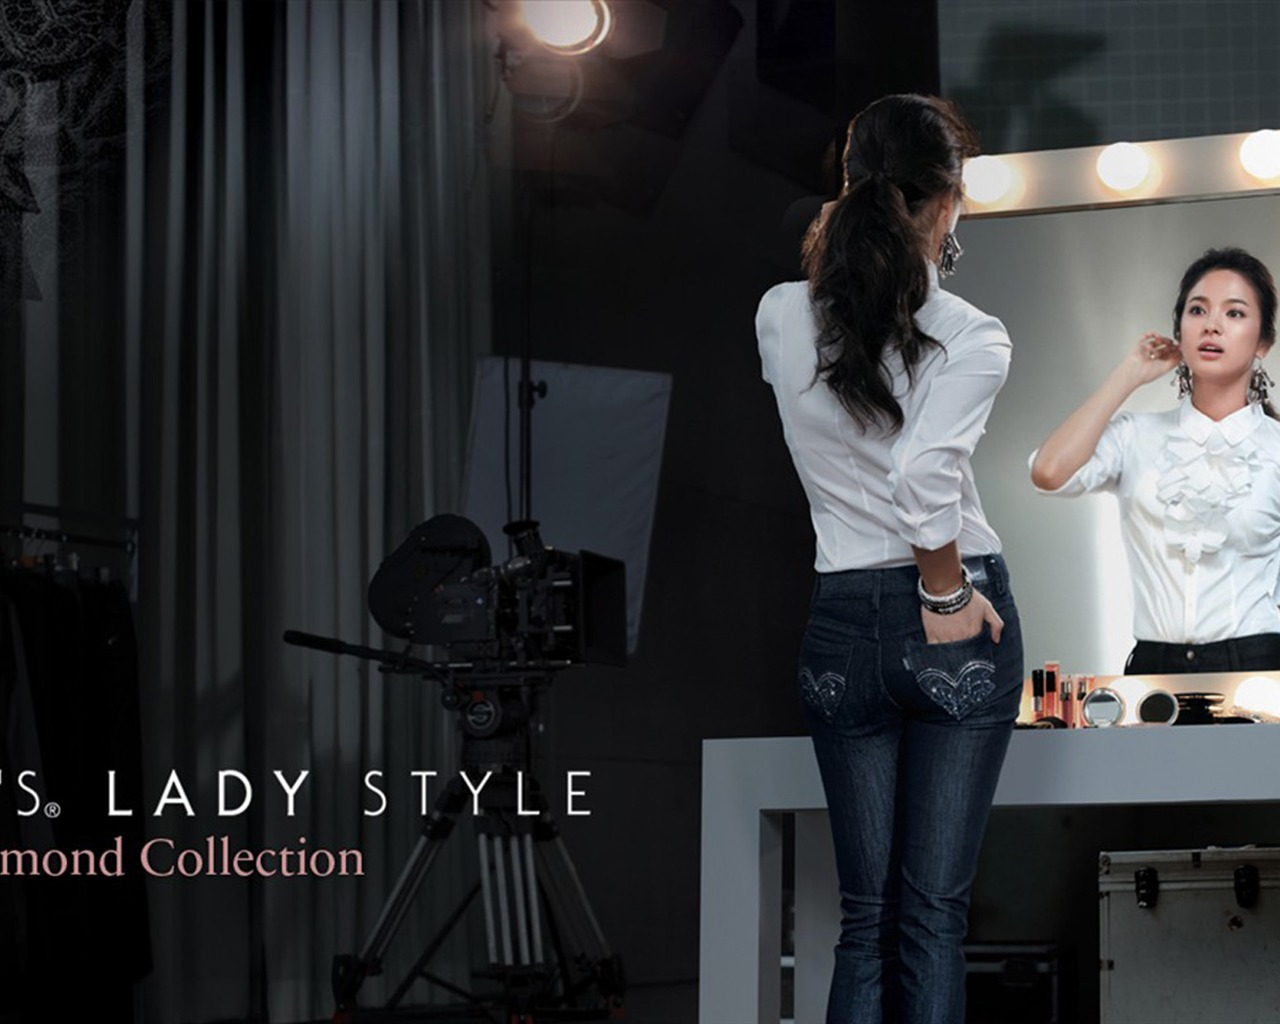 levis lady style clothing - photo #4